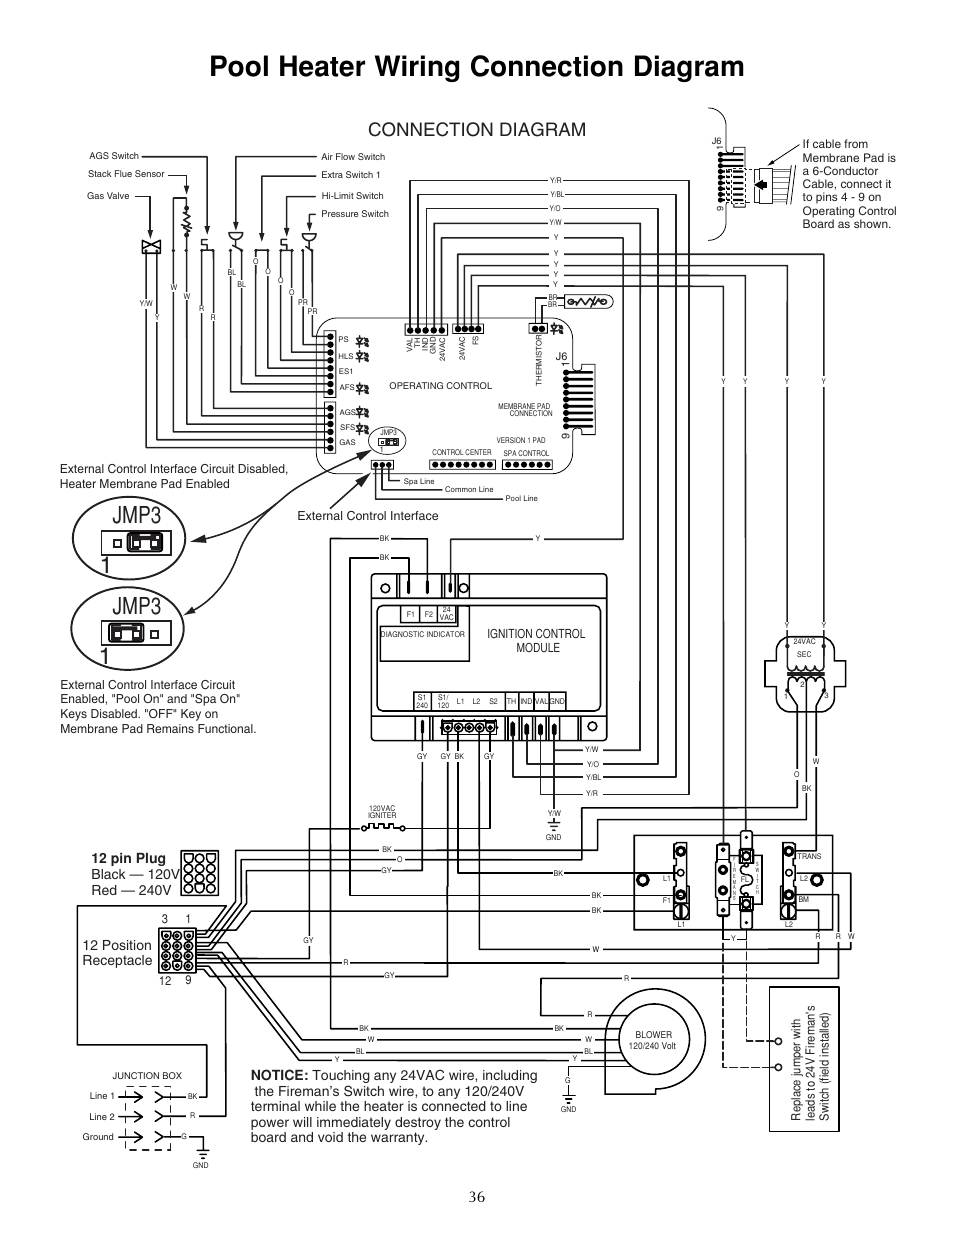 Wiring Diagrams For Sta Rite Pool Heaters Little Giant